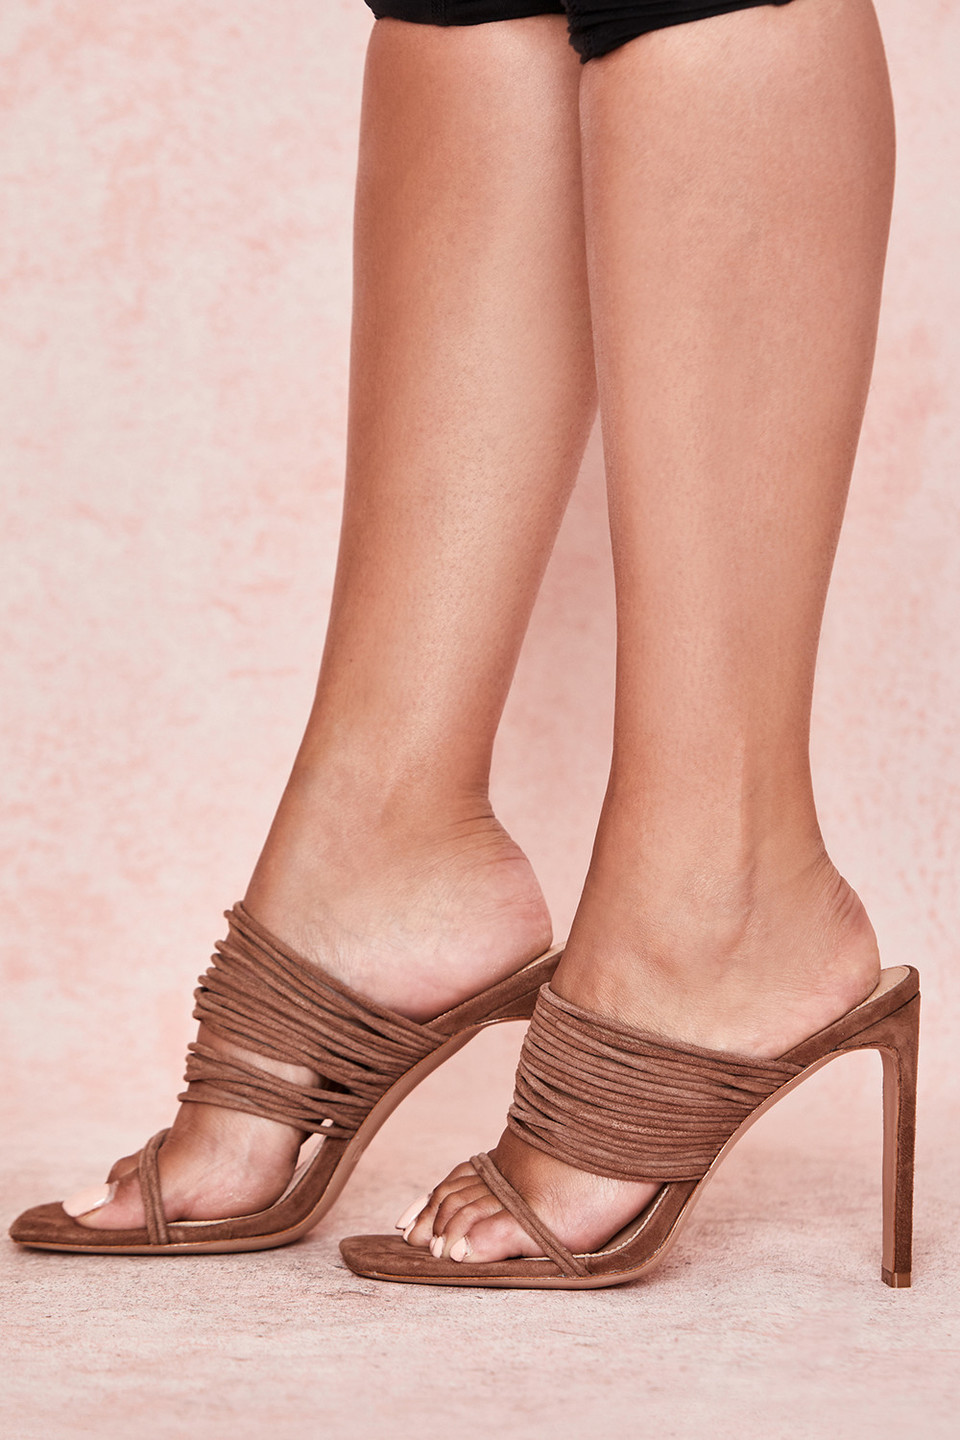 Evangeline Mocha Square Toe Strappy Sandals